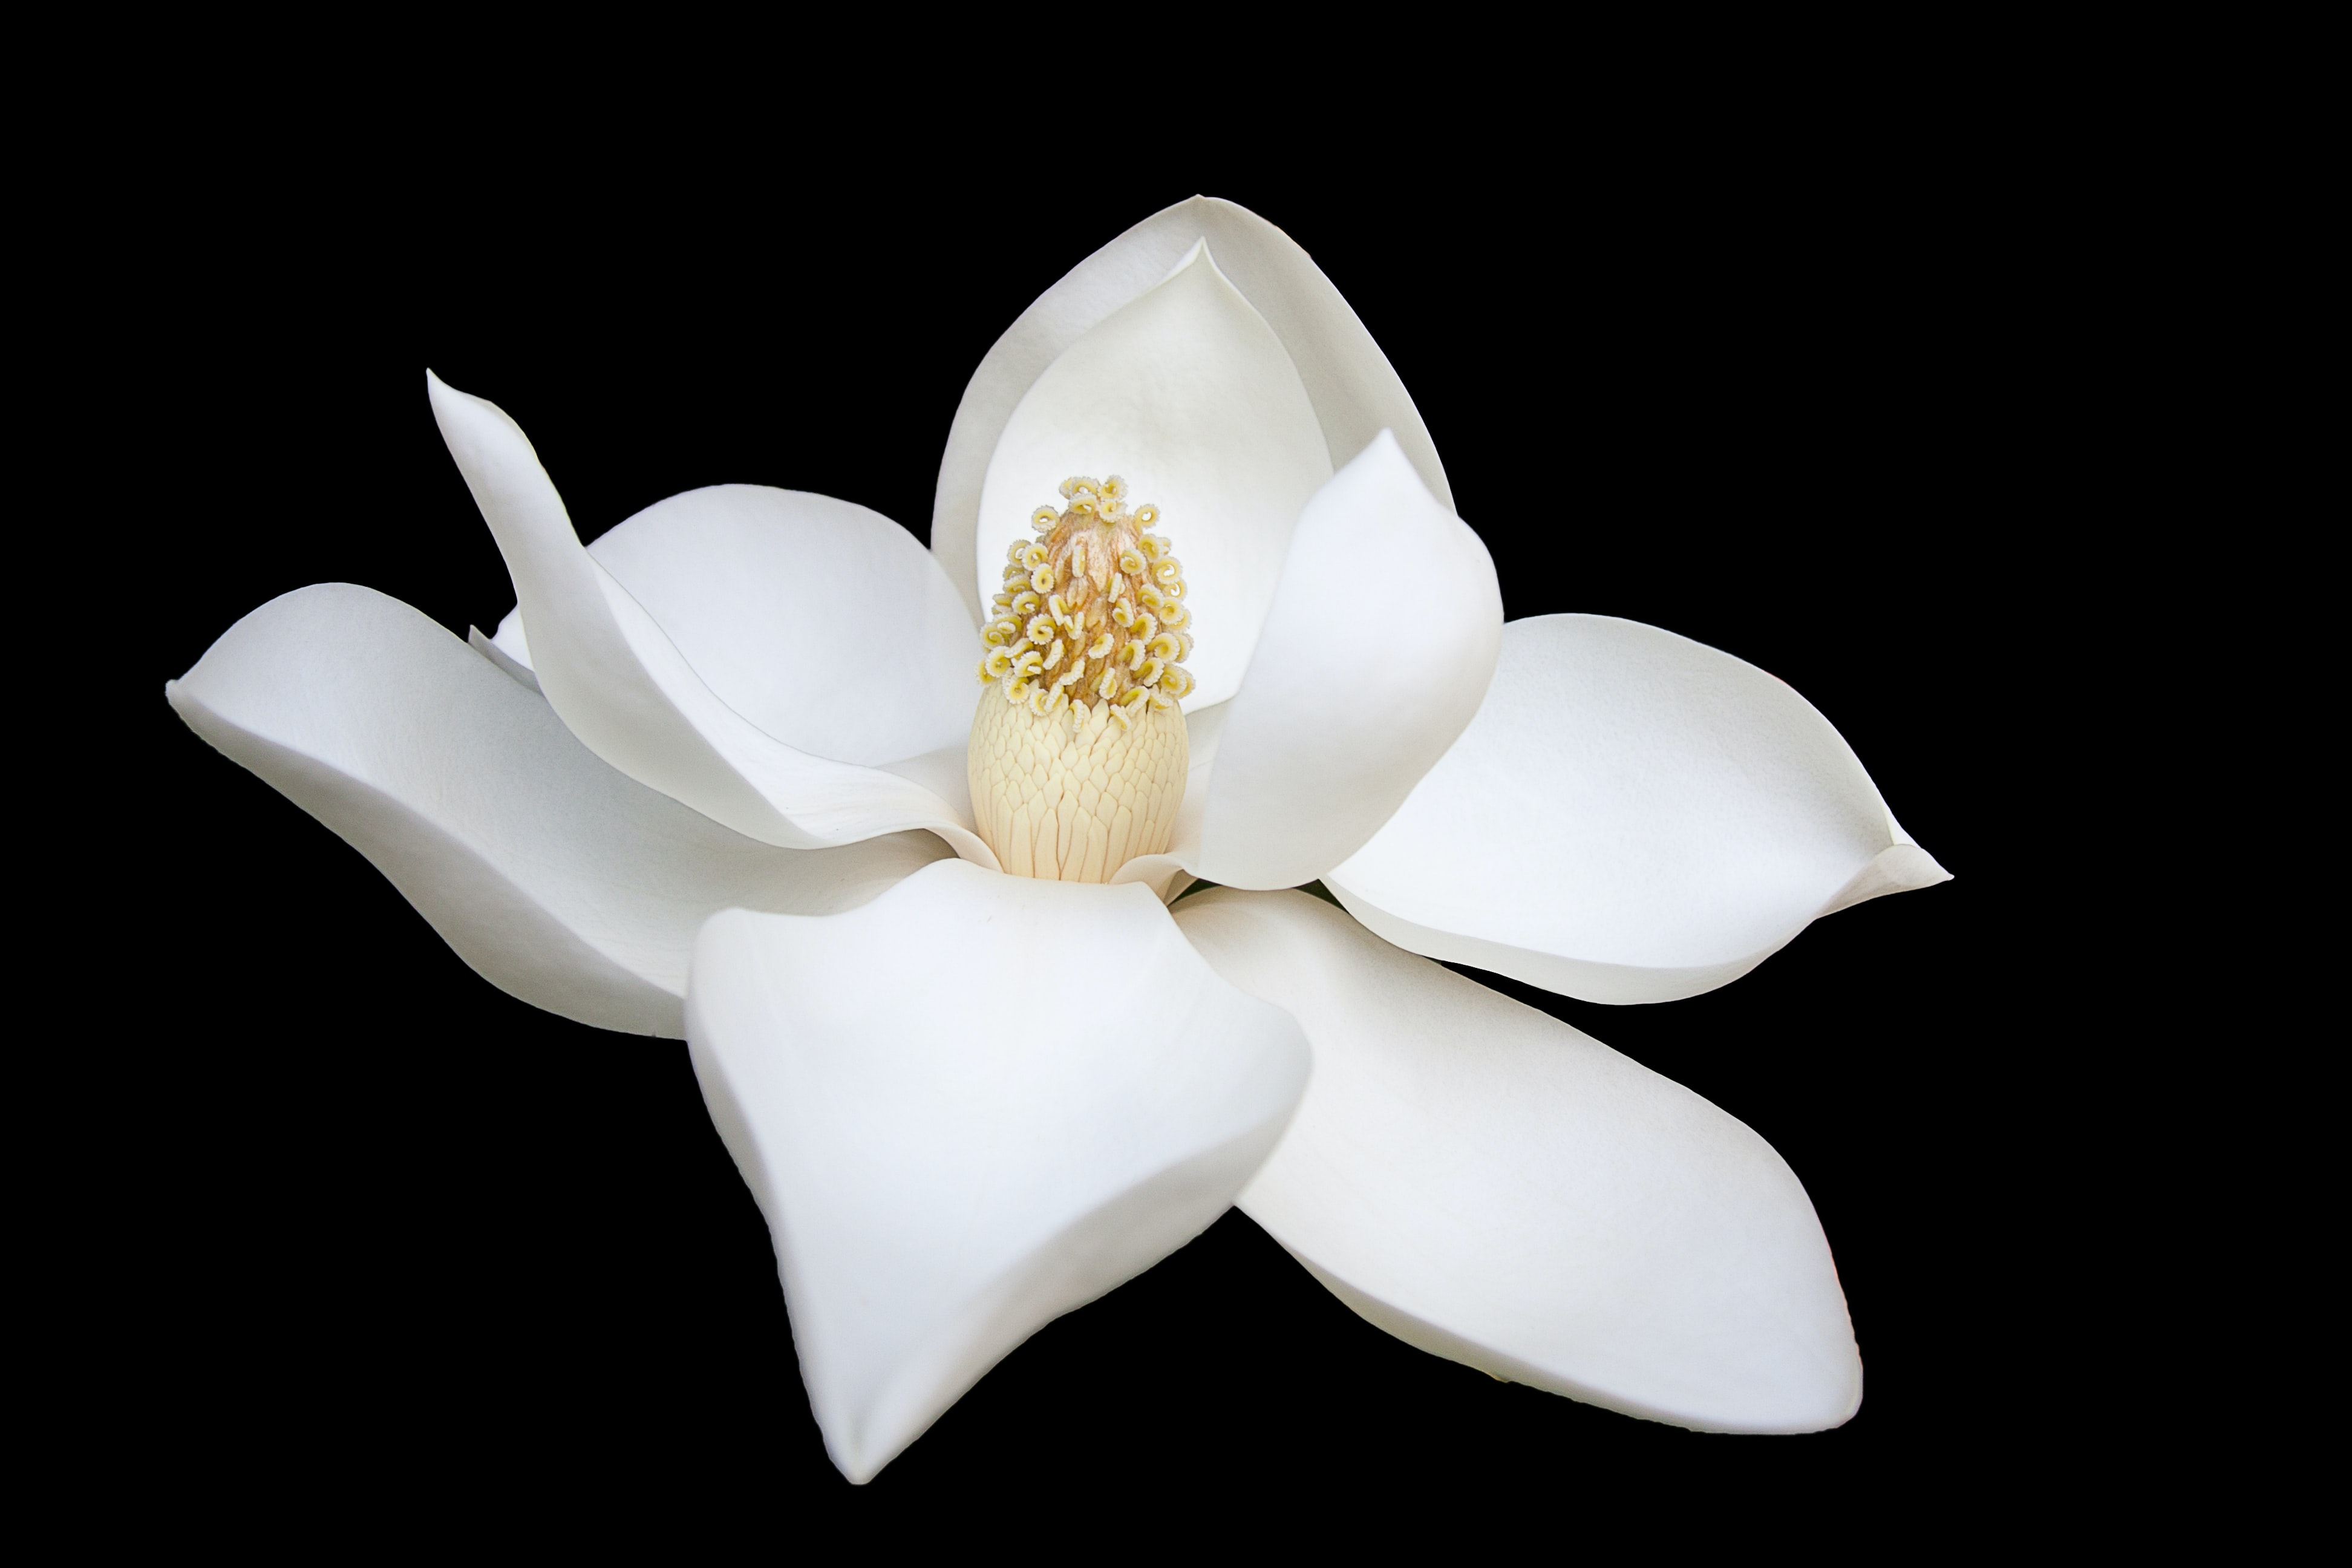 A macro shot of a snow white magnolia flower against a black background